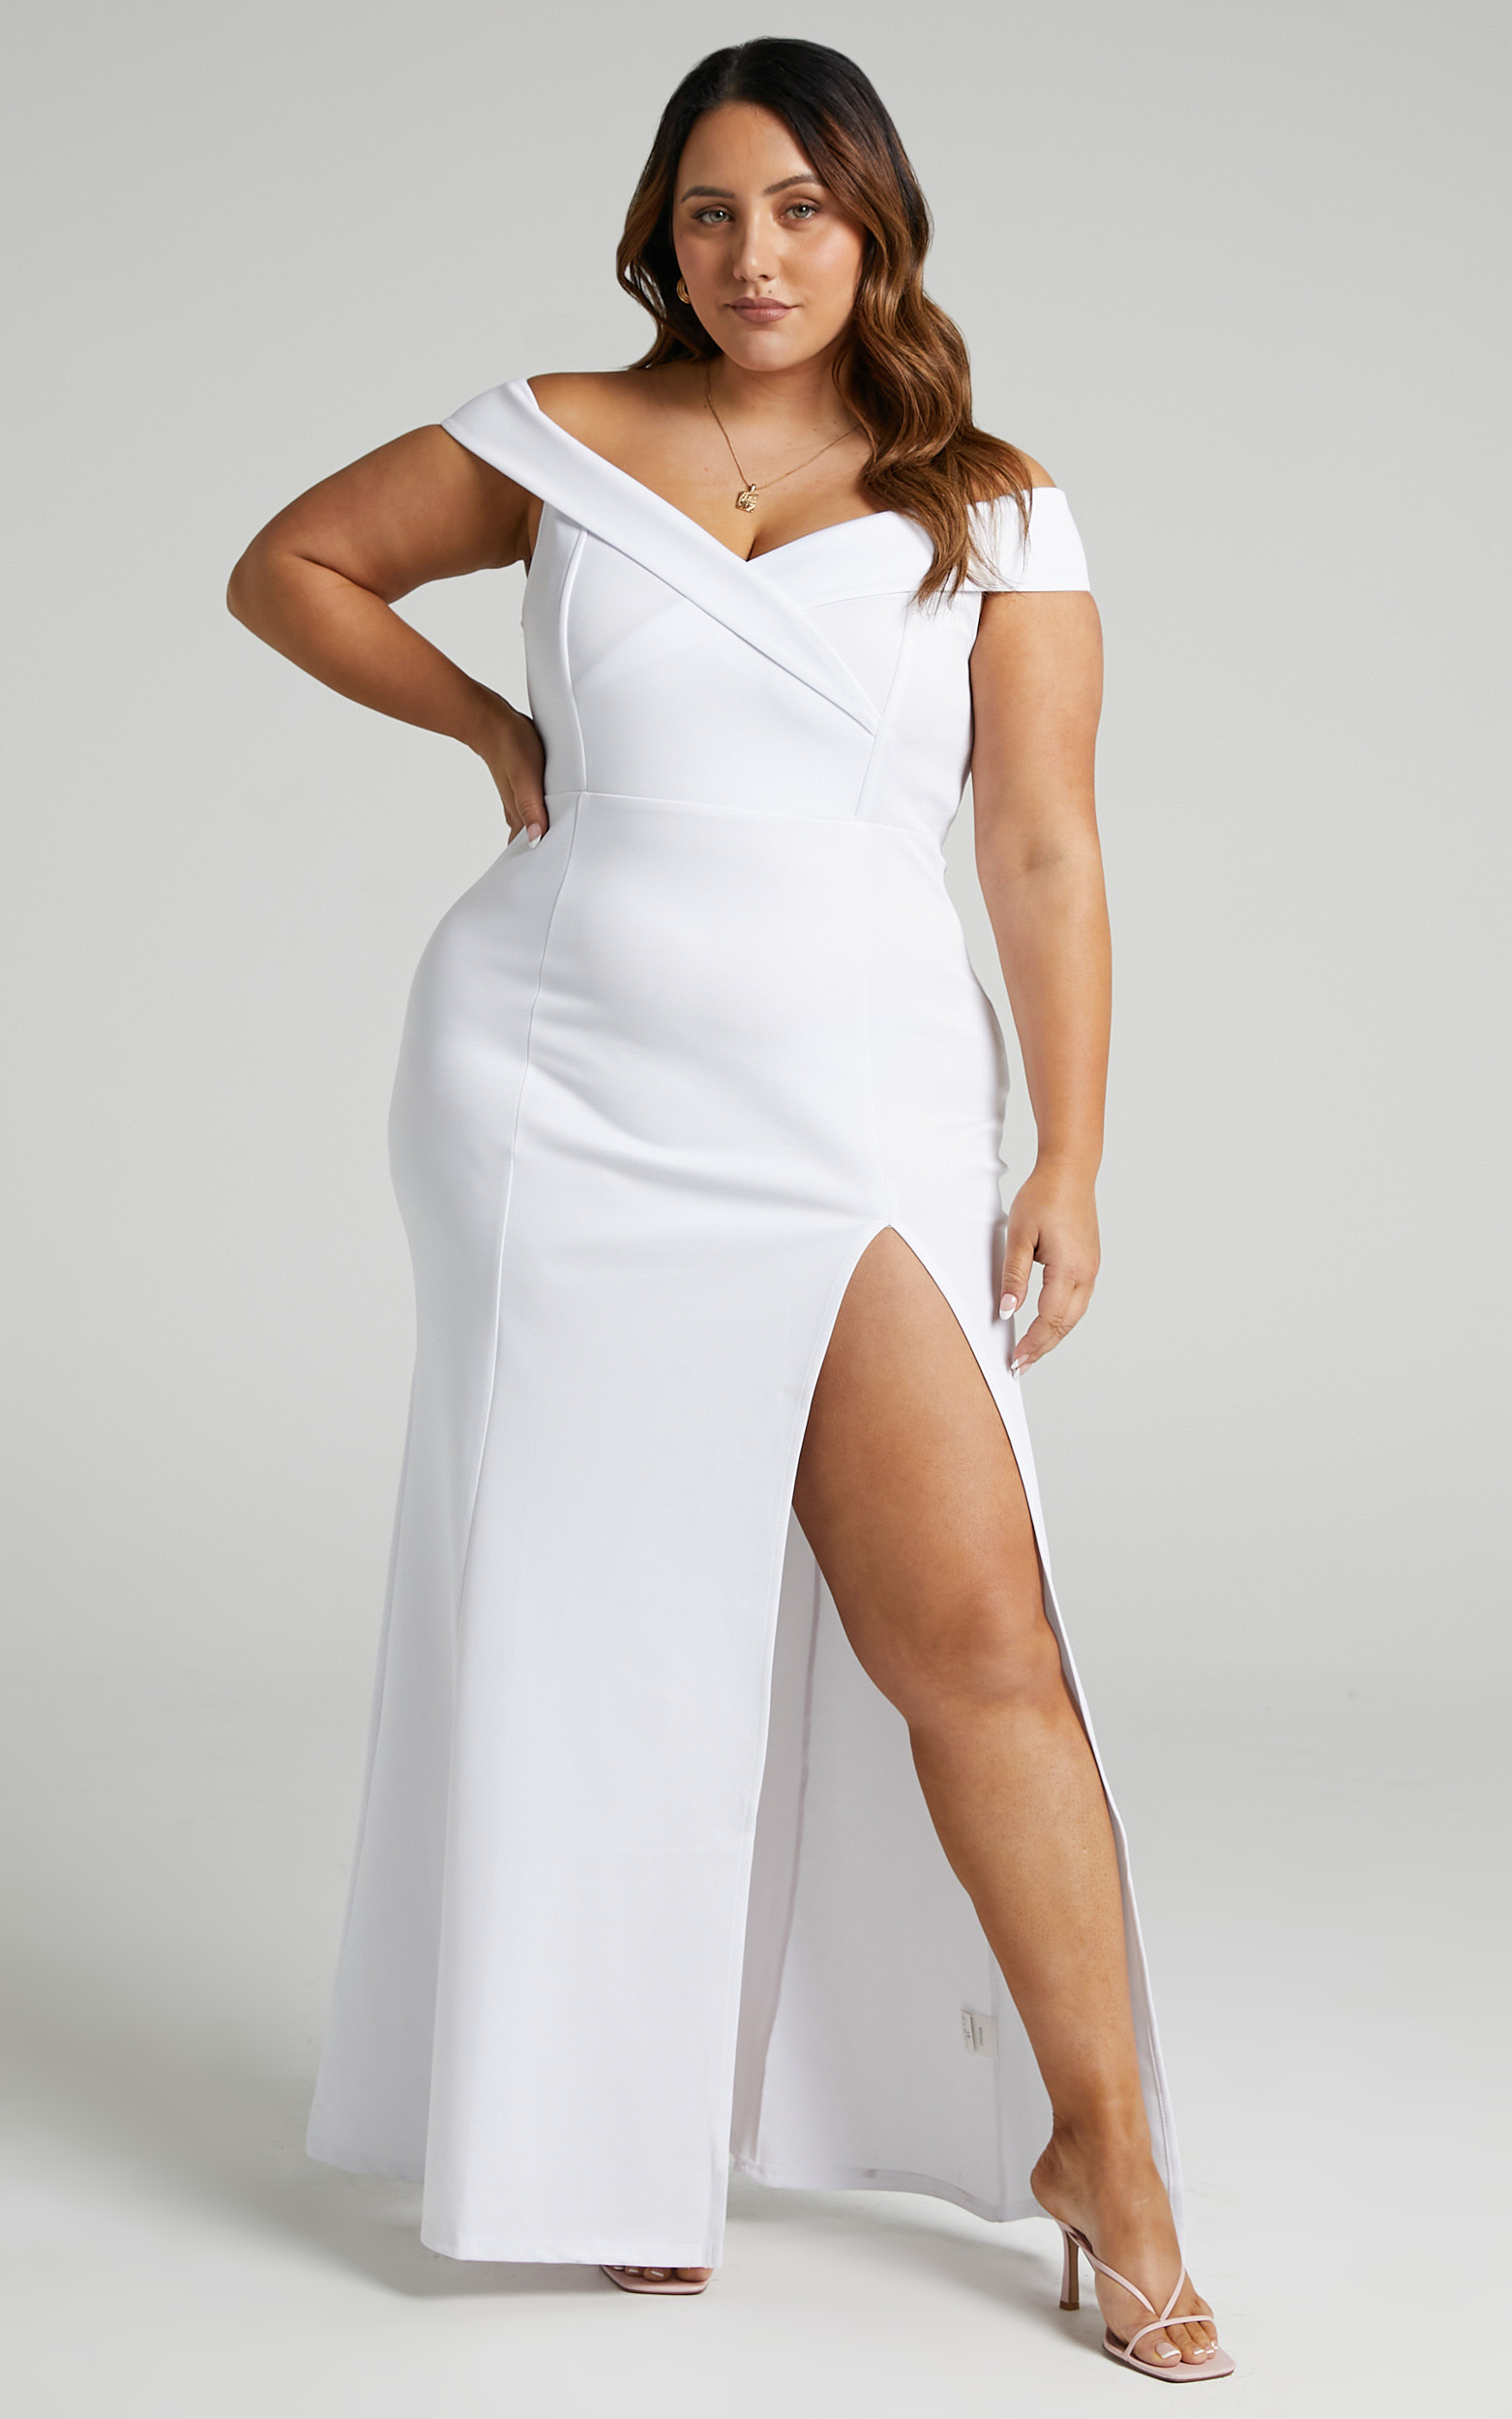 One For The Money Dress in White - 20, WHT3, hi-res image number null